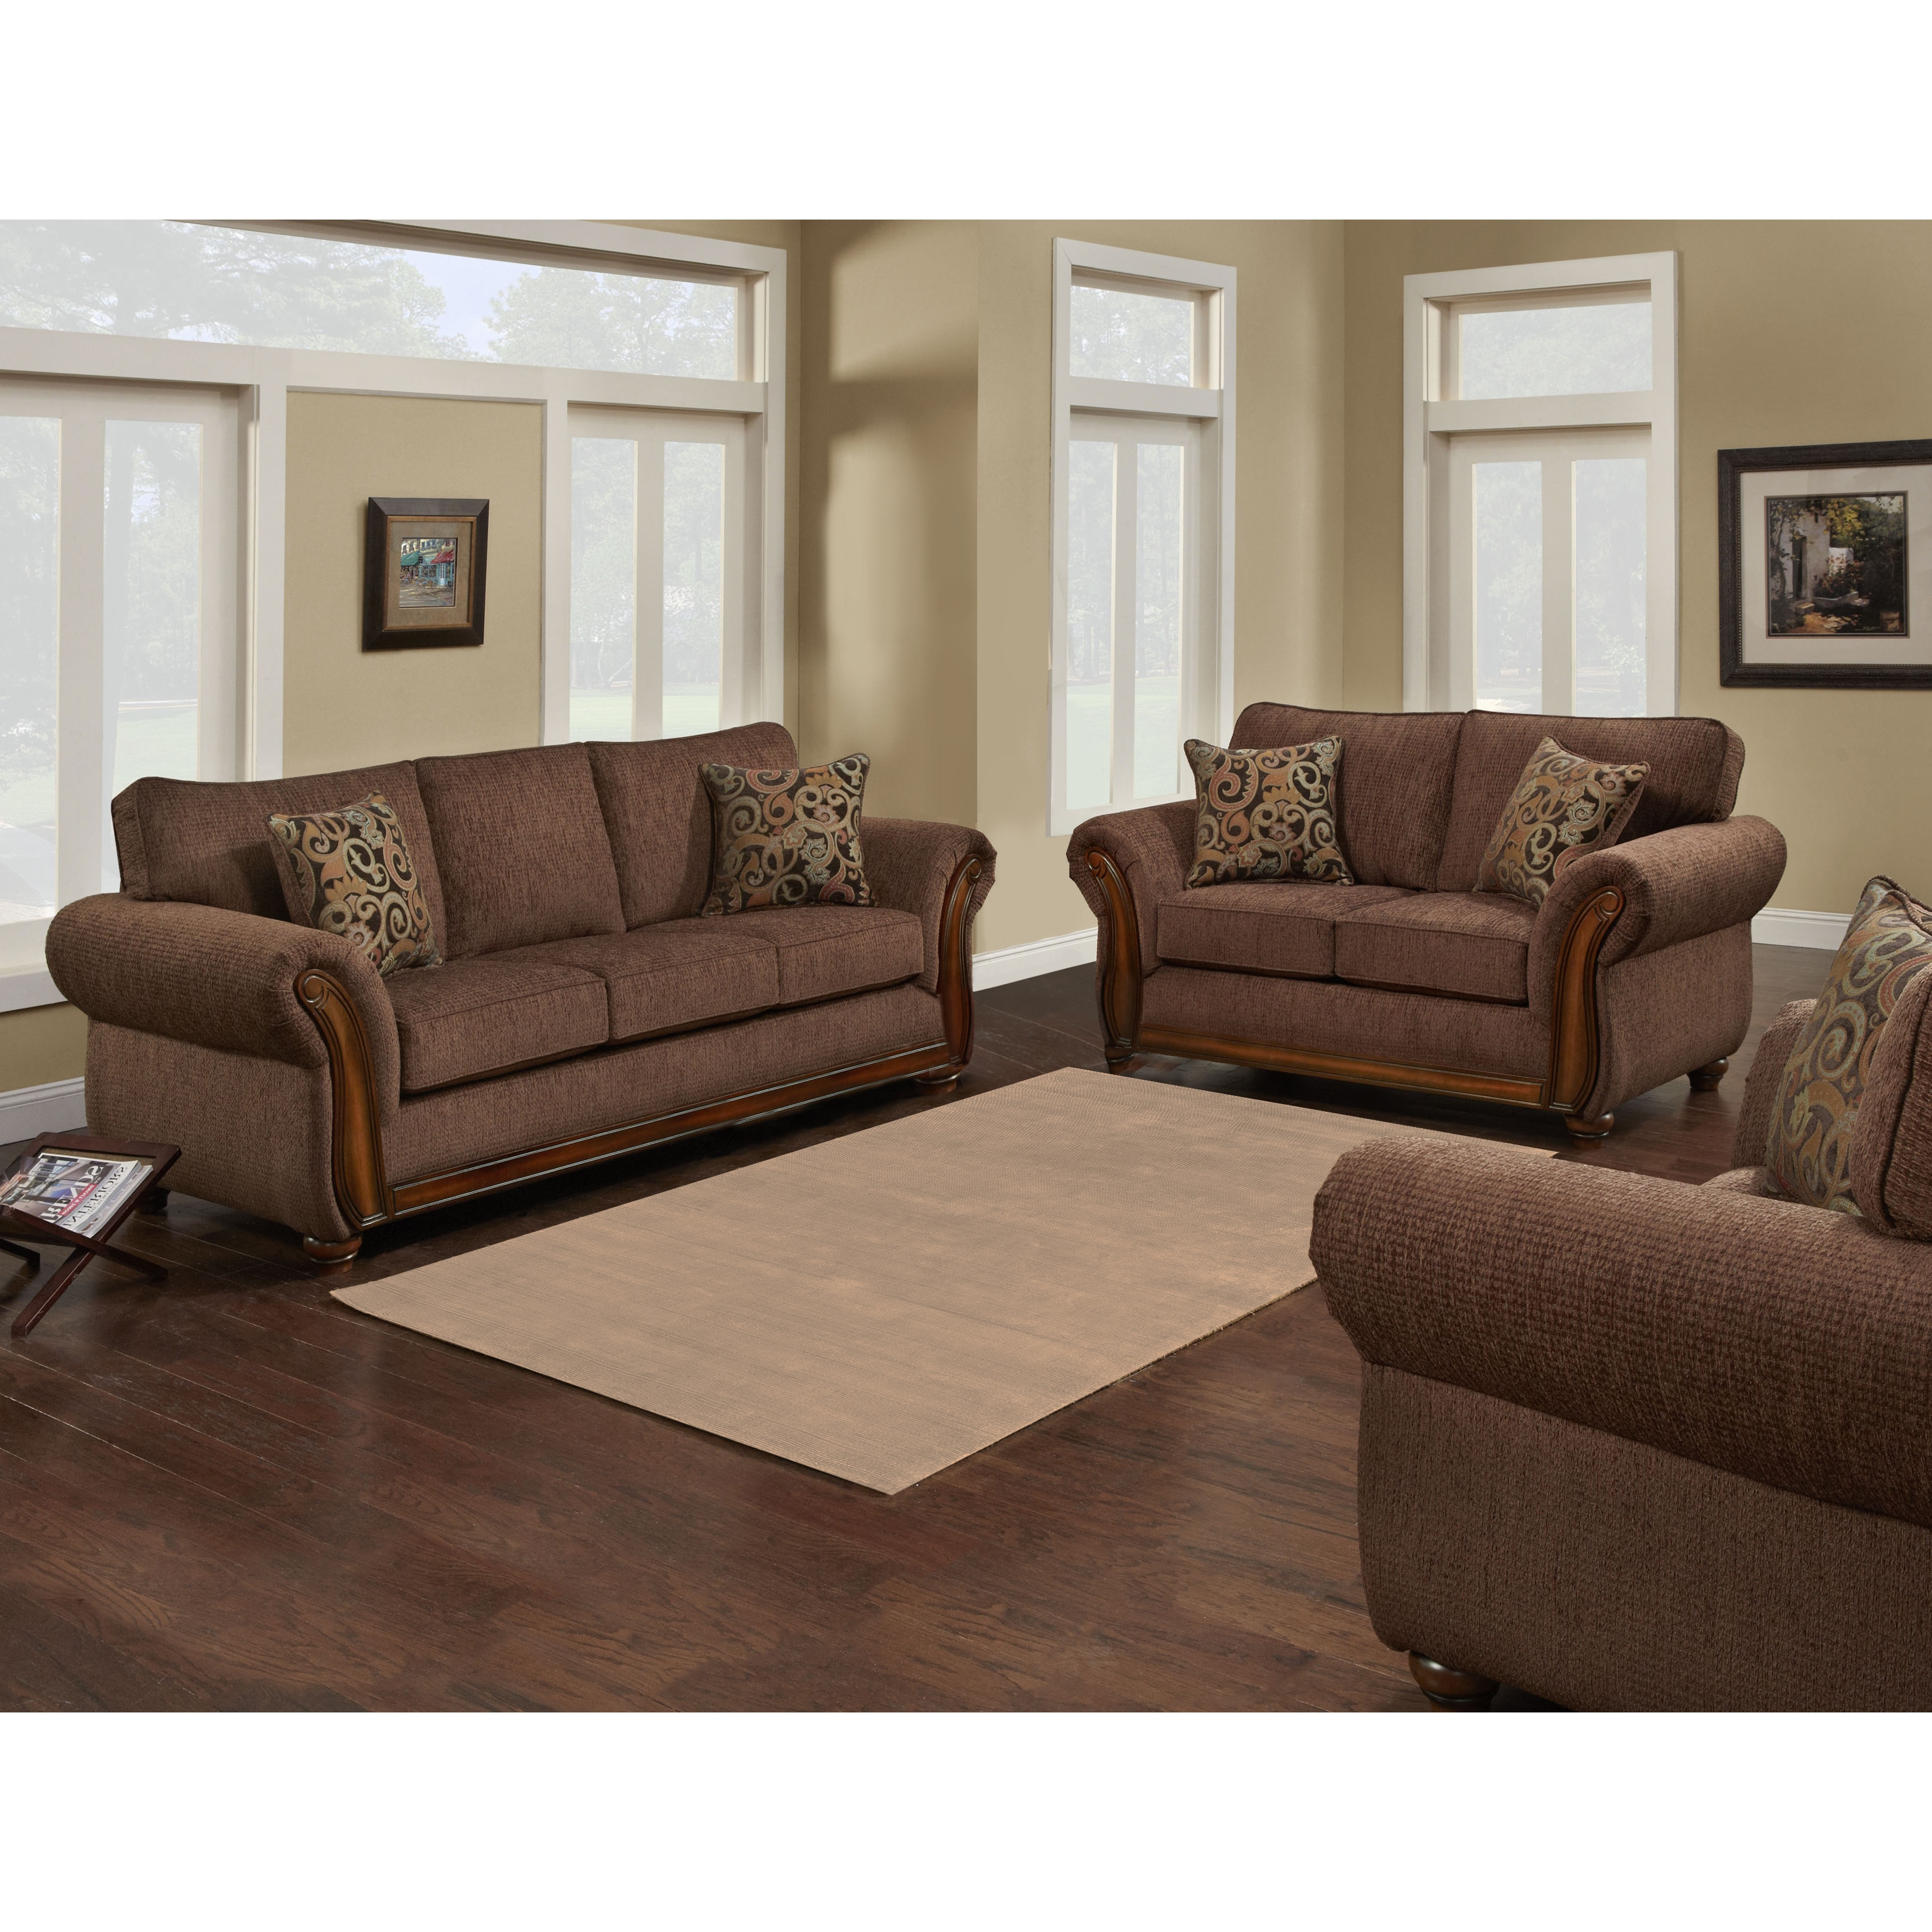 feet fabric traditional chpgn champagne carved cognac wood loveseat ma finish